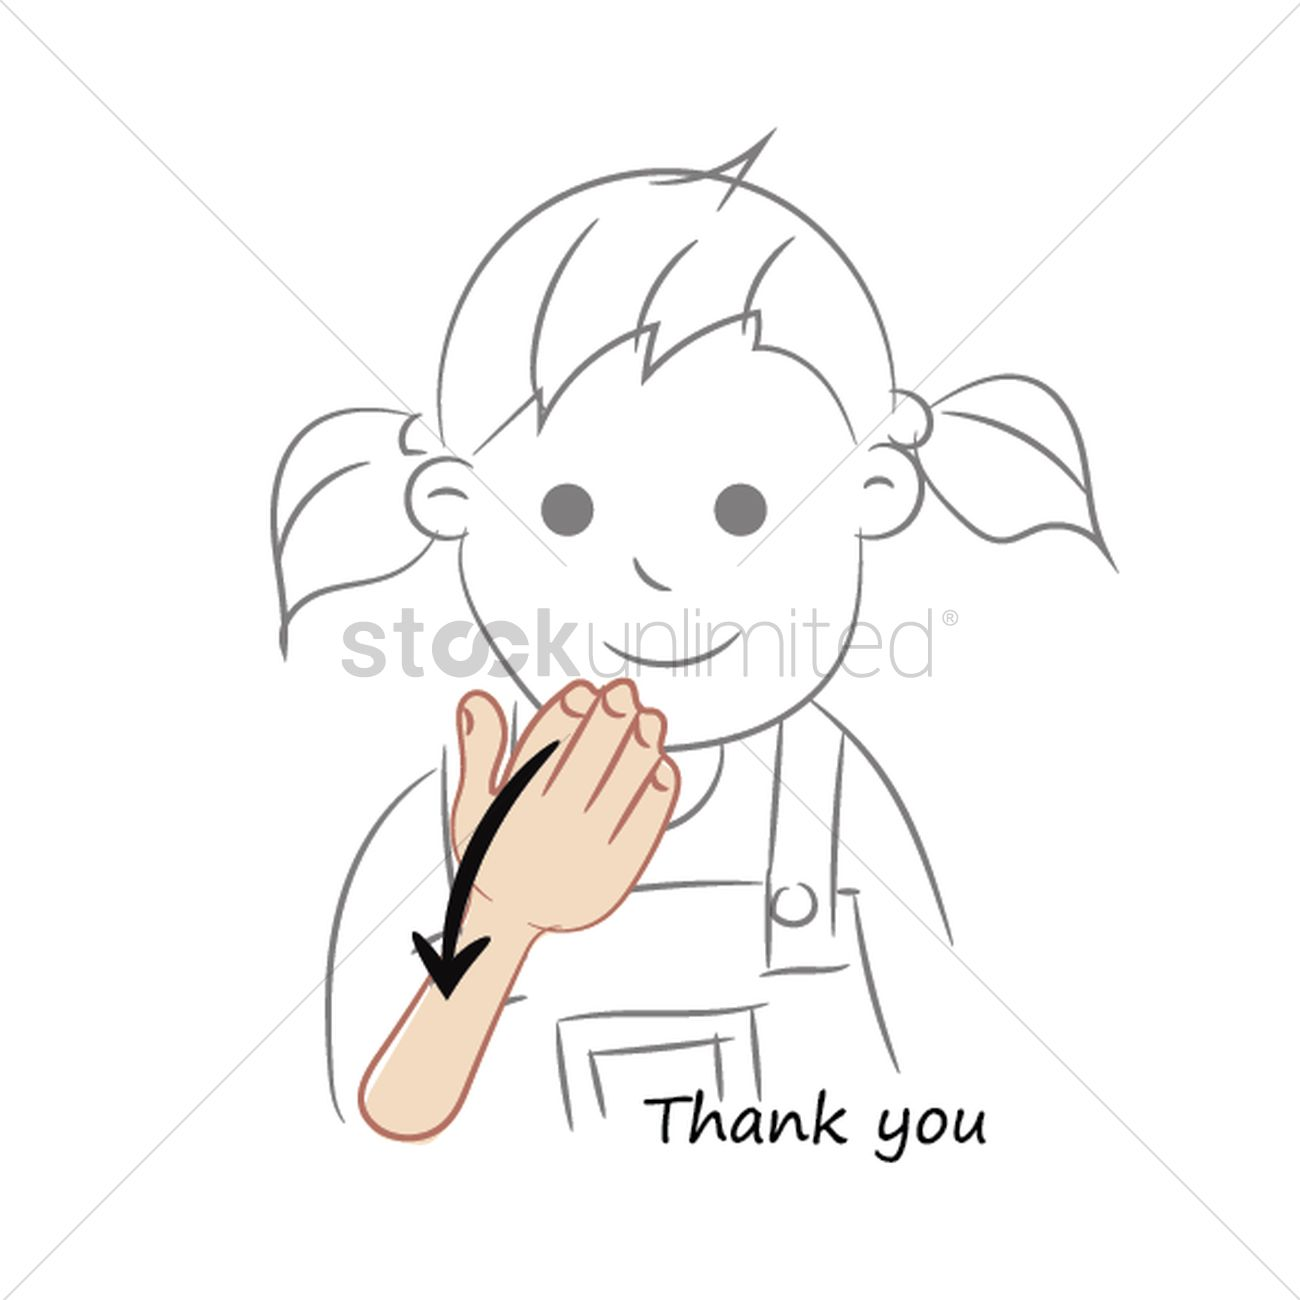 Thank you in sign language Vector Image.